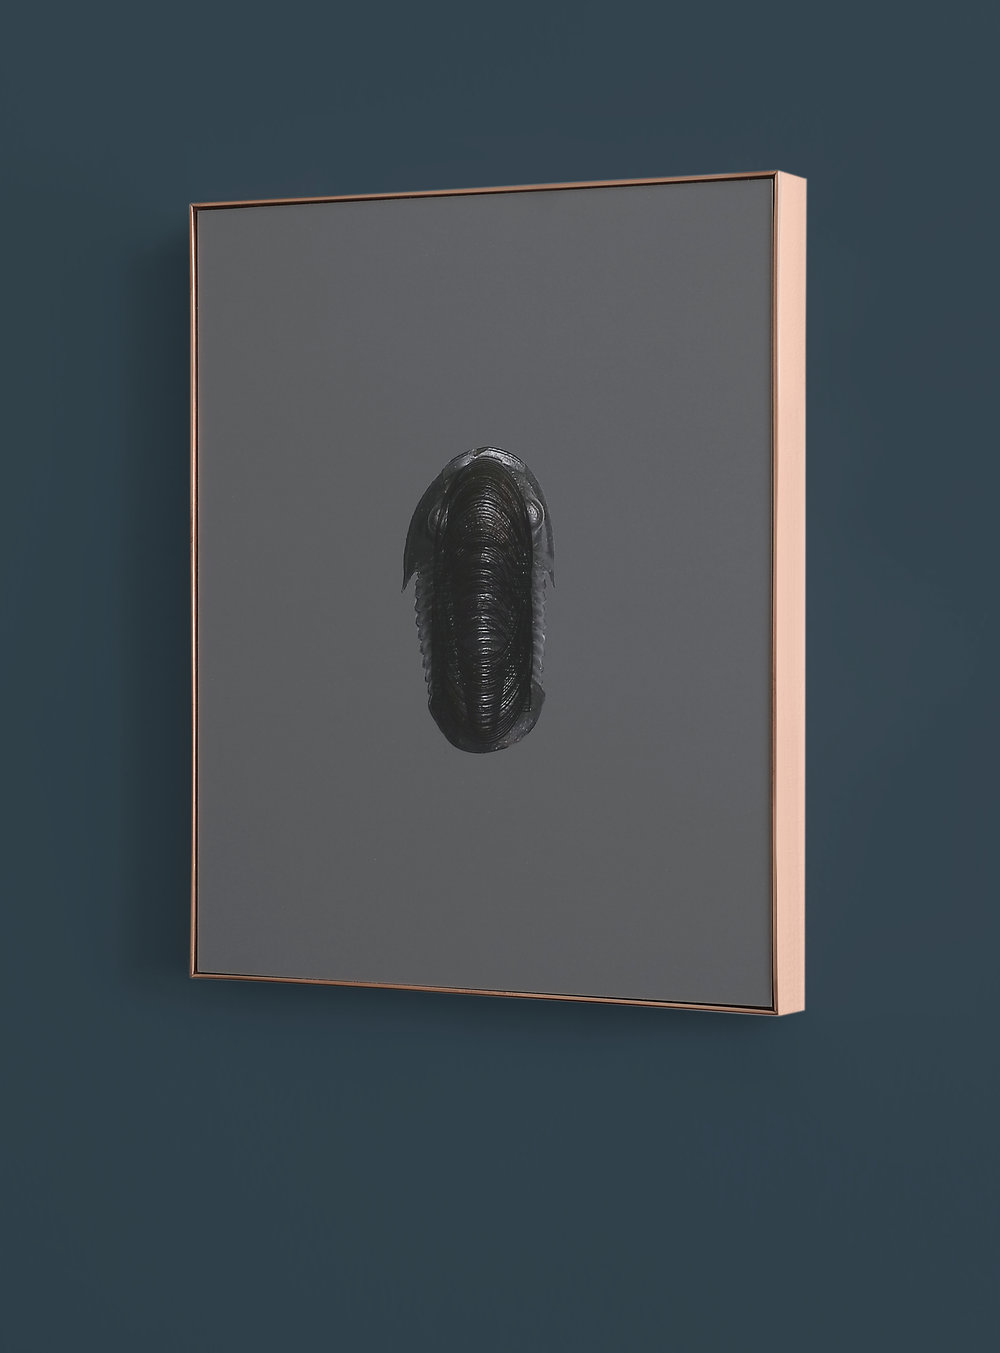 AnnaVogel, Trilobit #09, 2015, ink on pigment print, copper frame, 24 x 19 cm